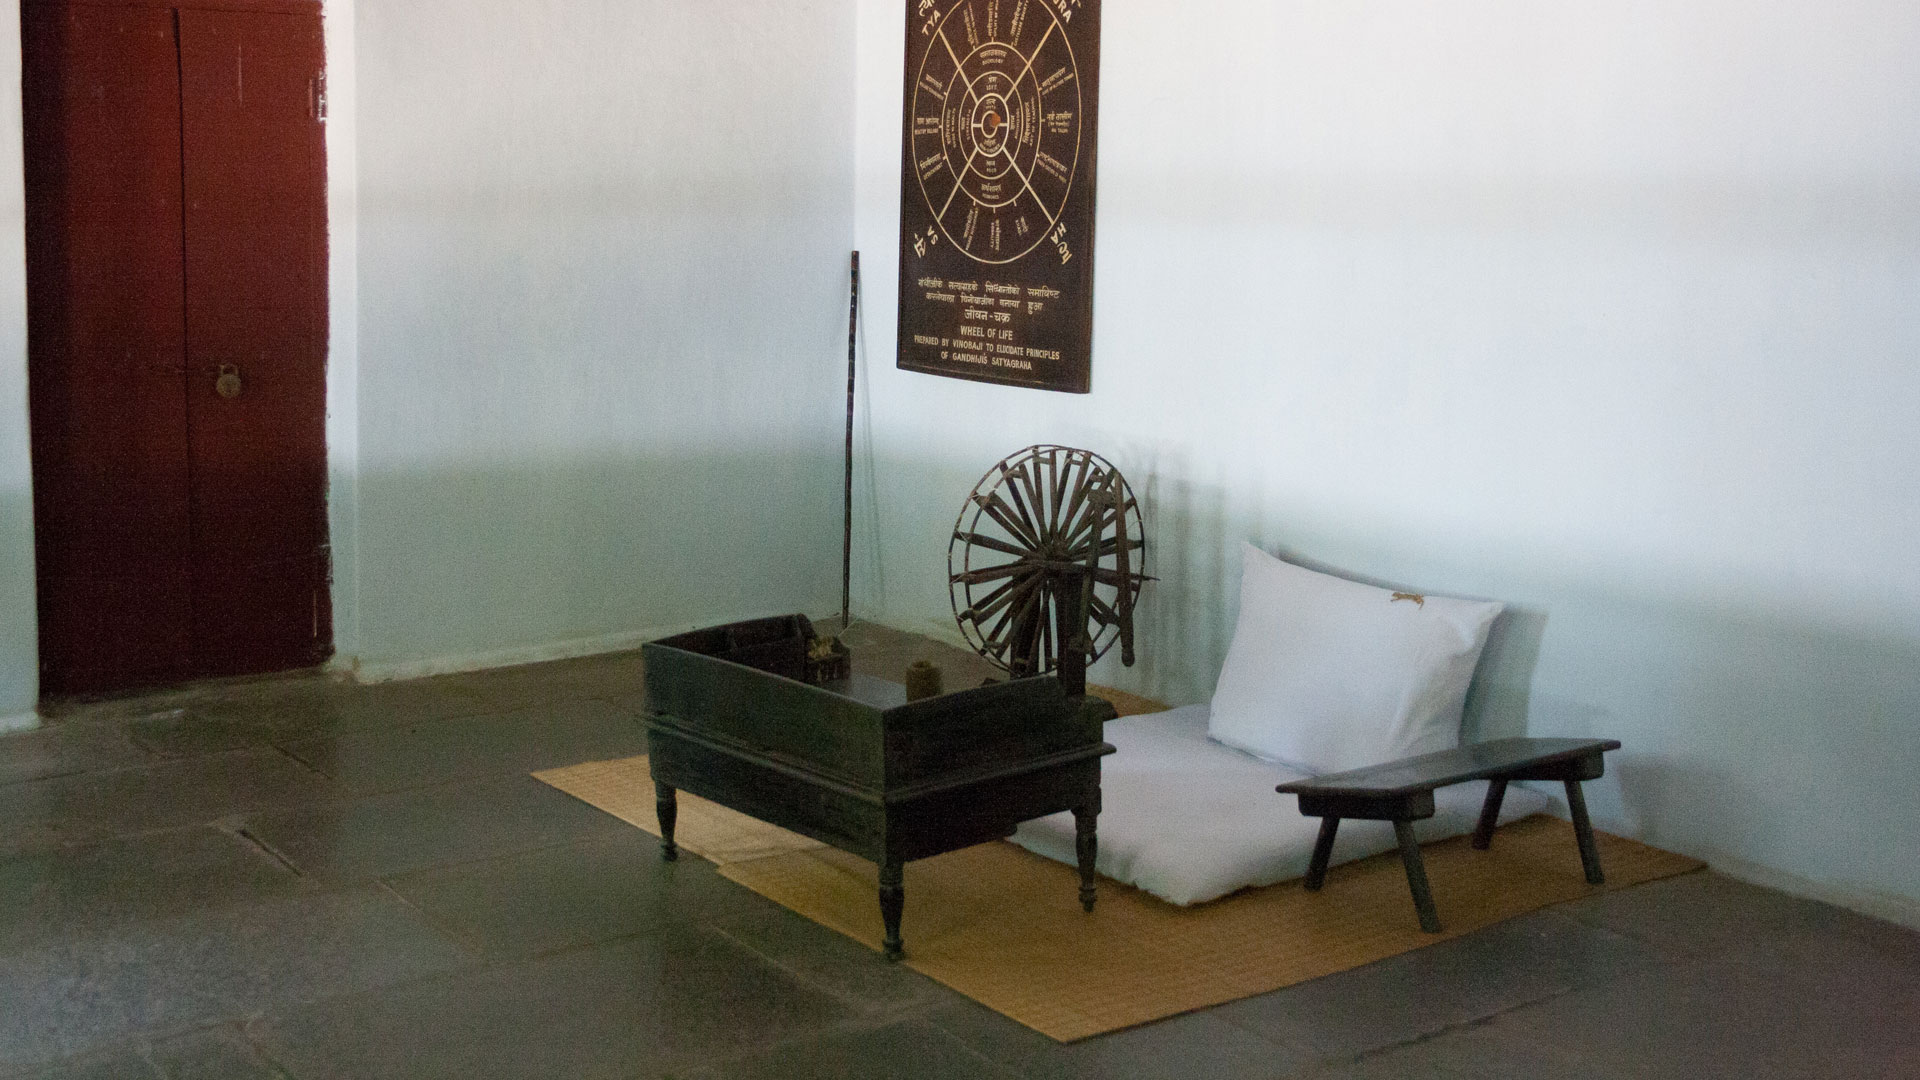 Gandhi's legendary spinning wheel at Sabarmati Ashram